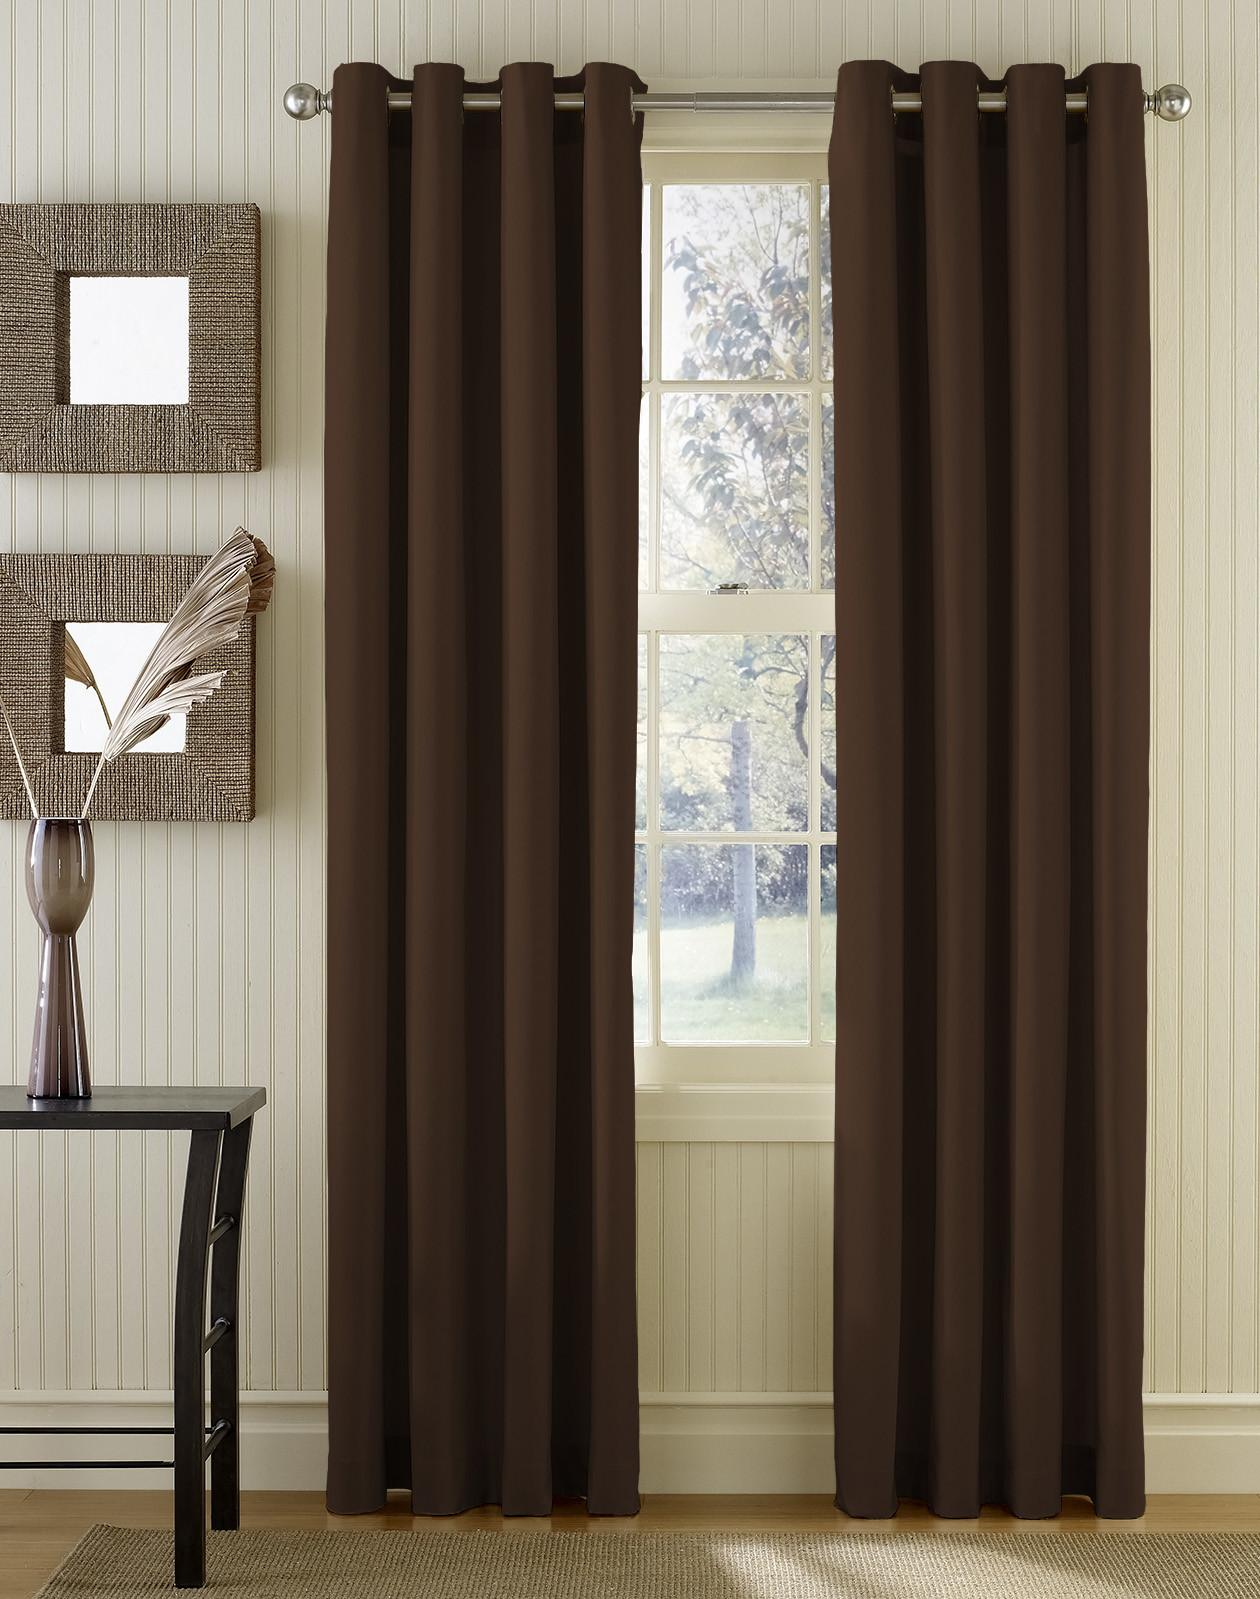 Curtain Interior Design Minimalist